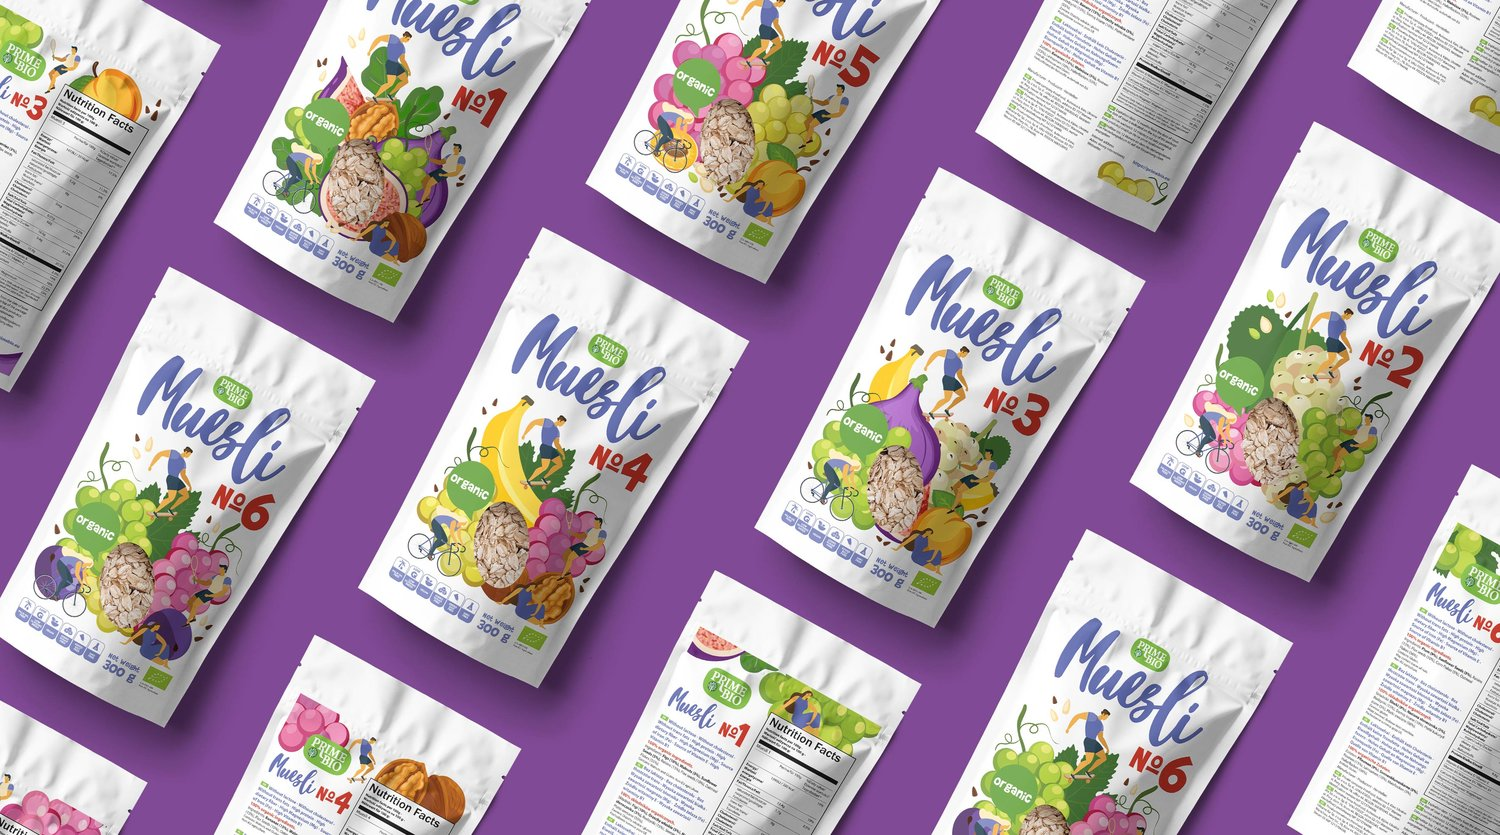 A Series of Packaging Designs for Cereals, Muesli and Dried Fruit